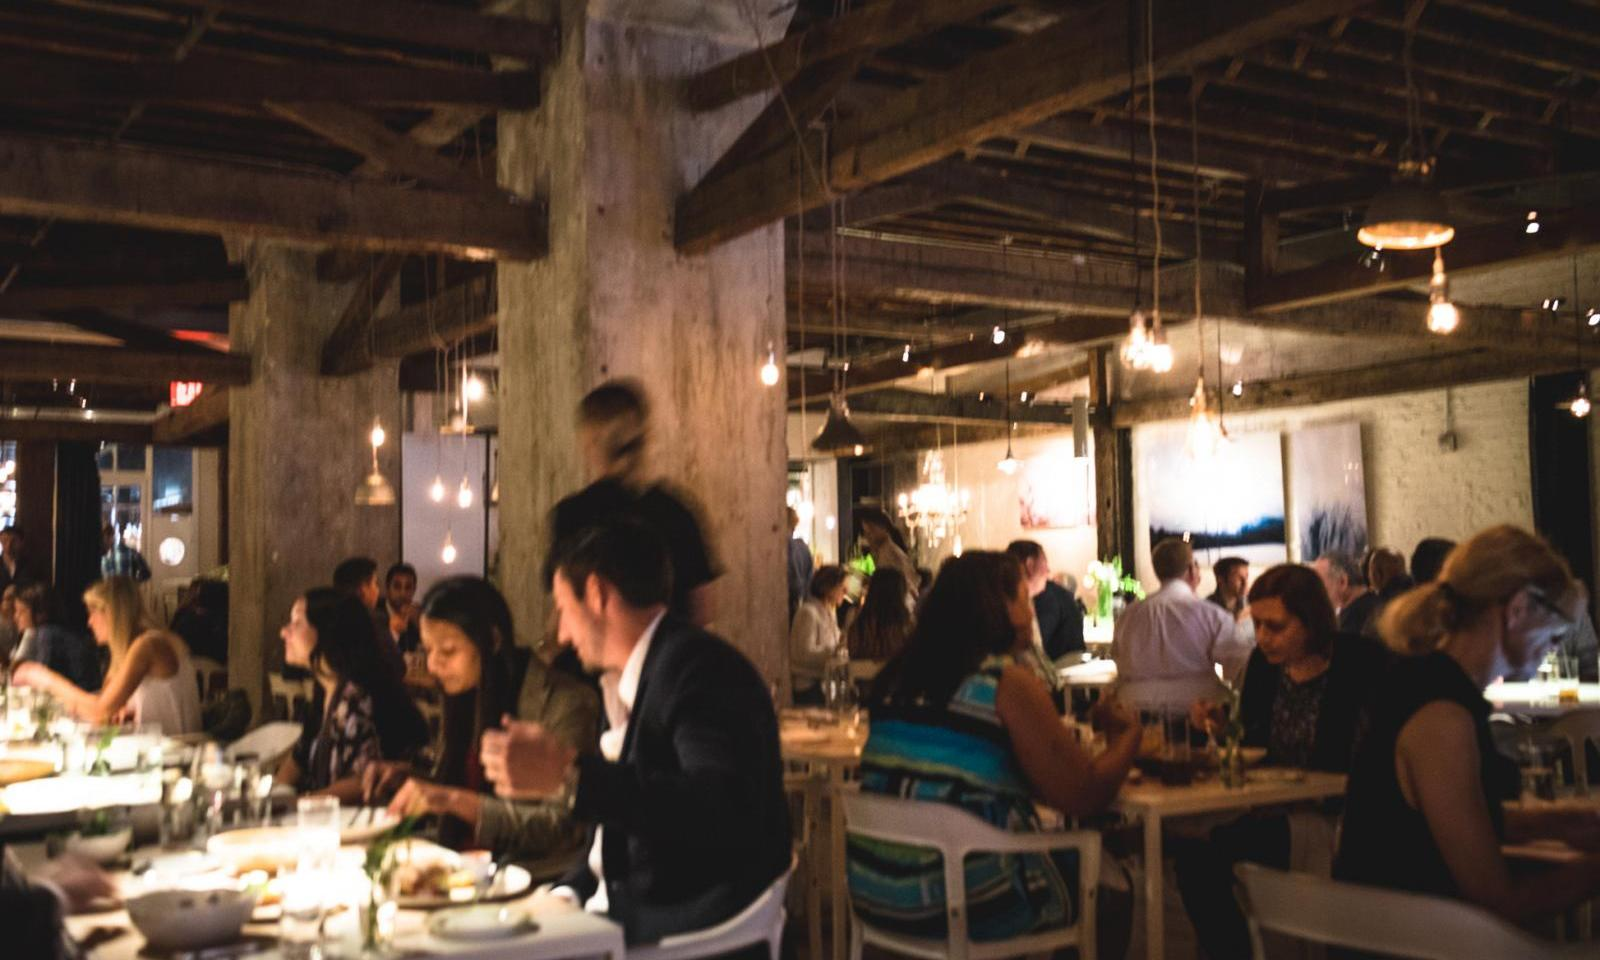 Loving New York & ABC Kitchen NYC - A Lunch Hot Spot in Midtown Manhattan